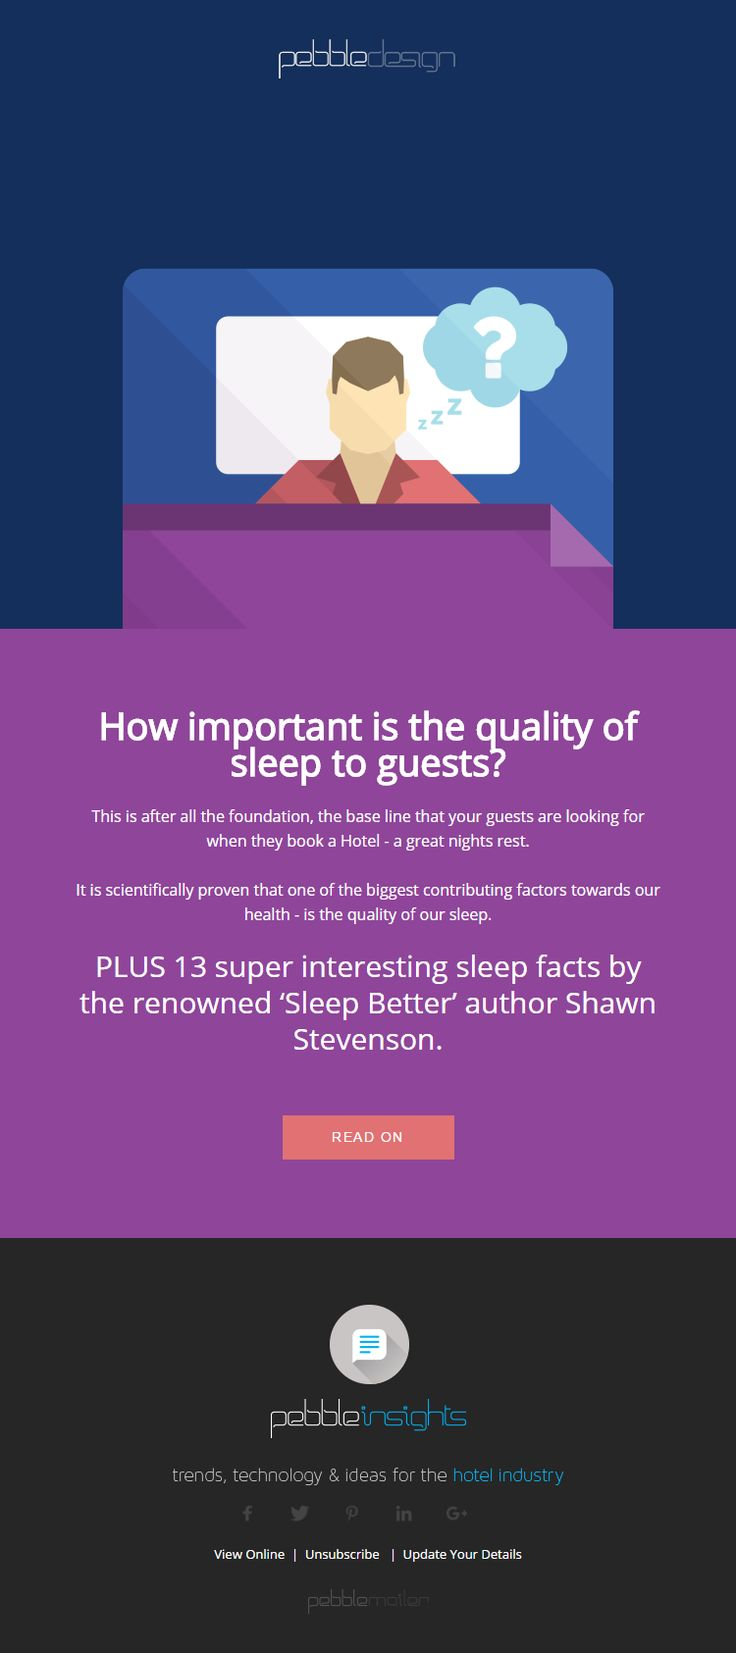 How important is the quality of sleep to guests? - Hospitality Insights #hospitalityinsights #hotelwebdesign #hotelwebsitedesign #pebbledesign #hotelwebsites